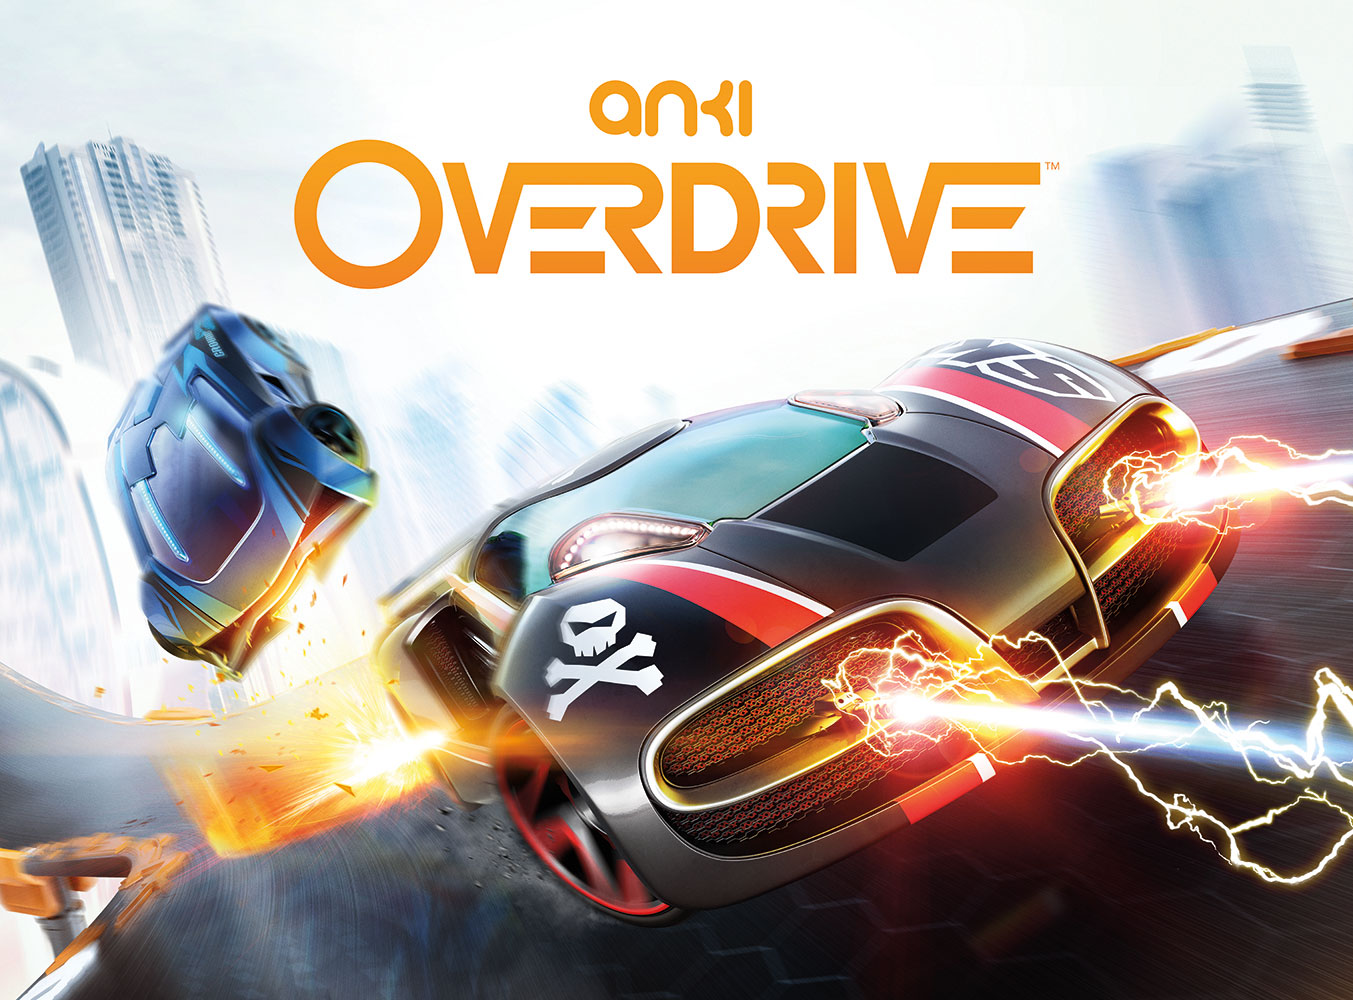 The new Anki Overdrive will speed onto the market later this year